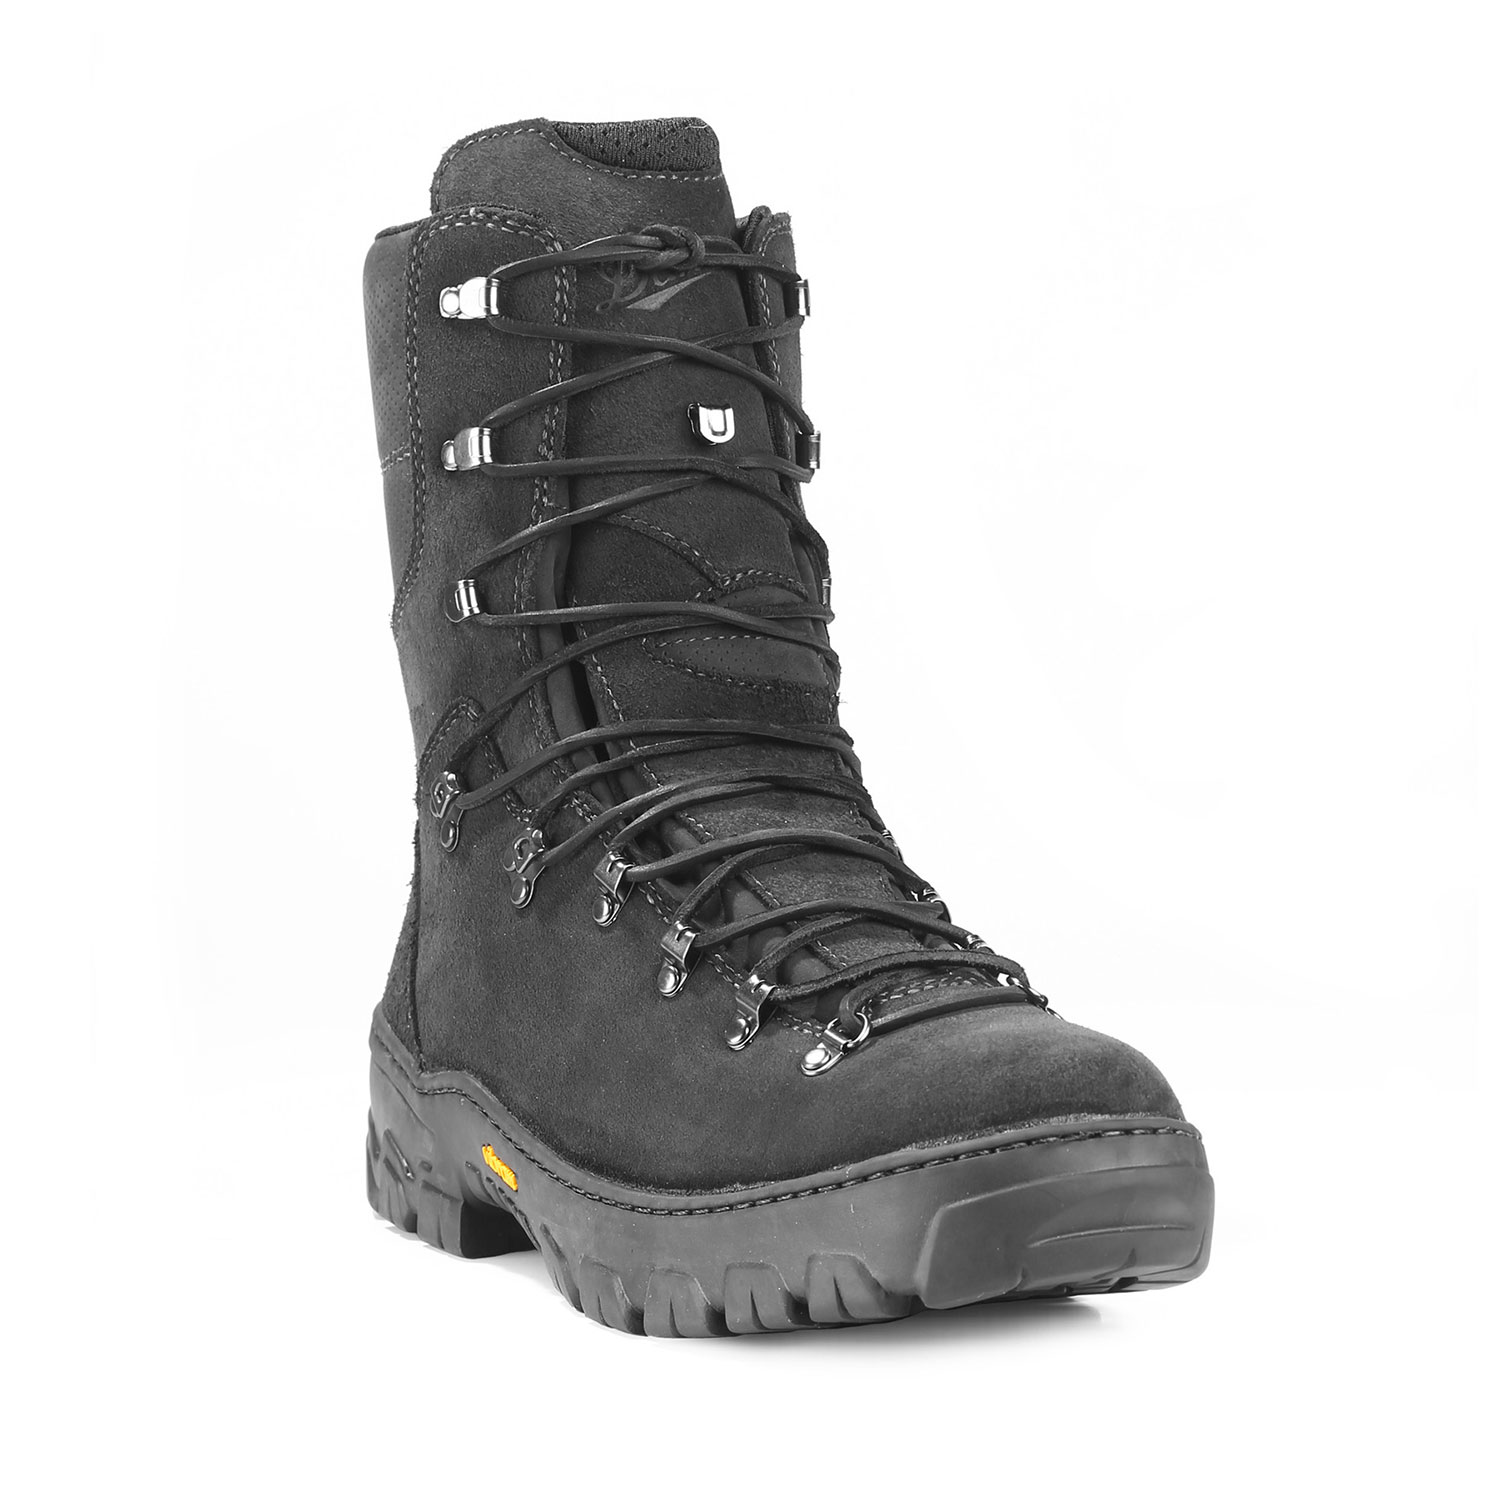 Wildland Tactical Firefighter Boot